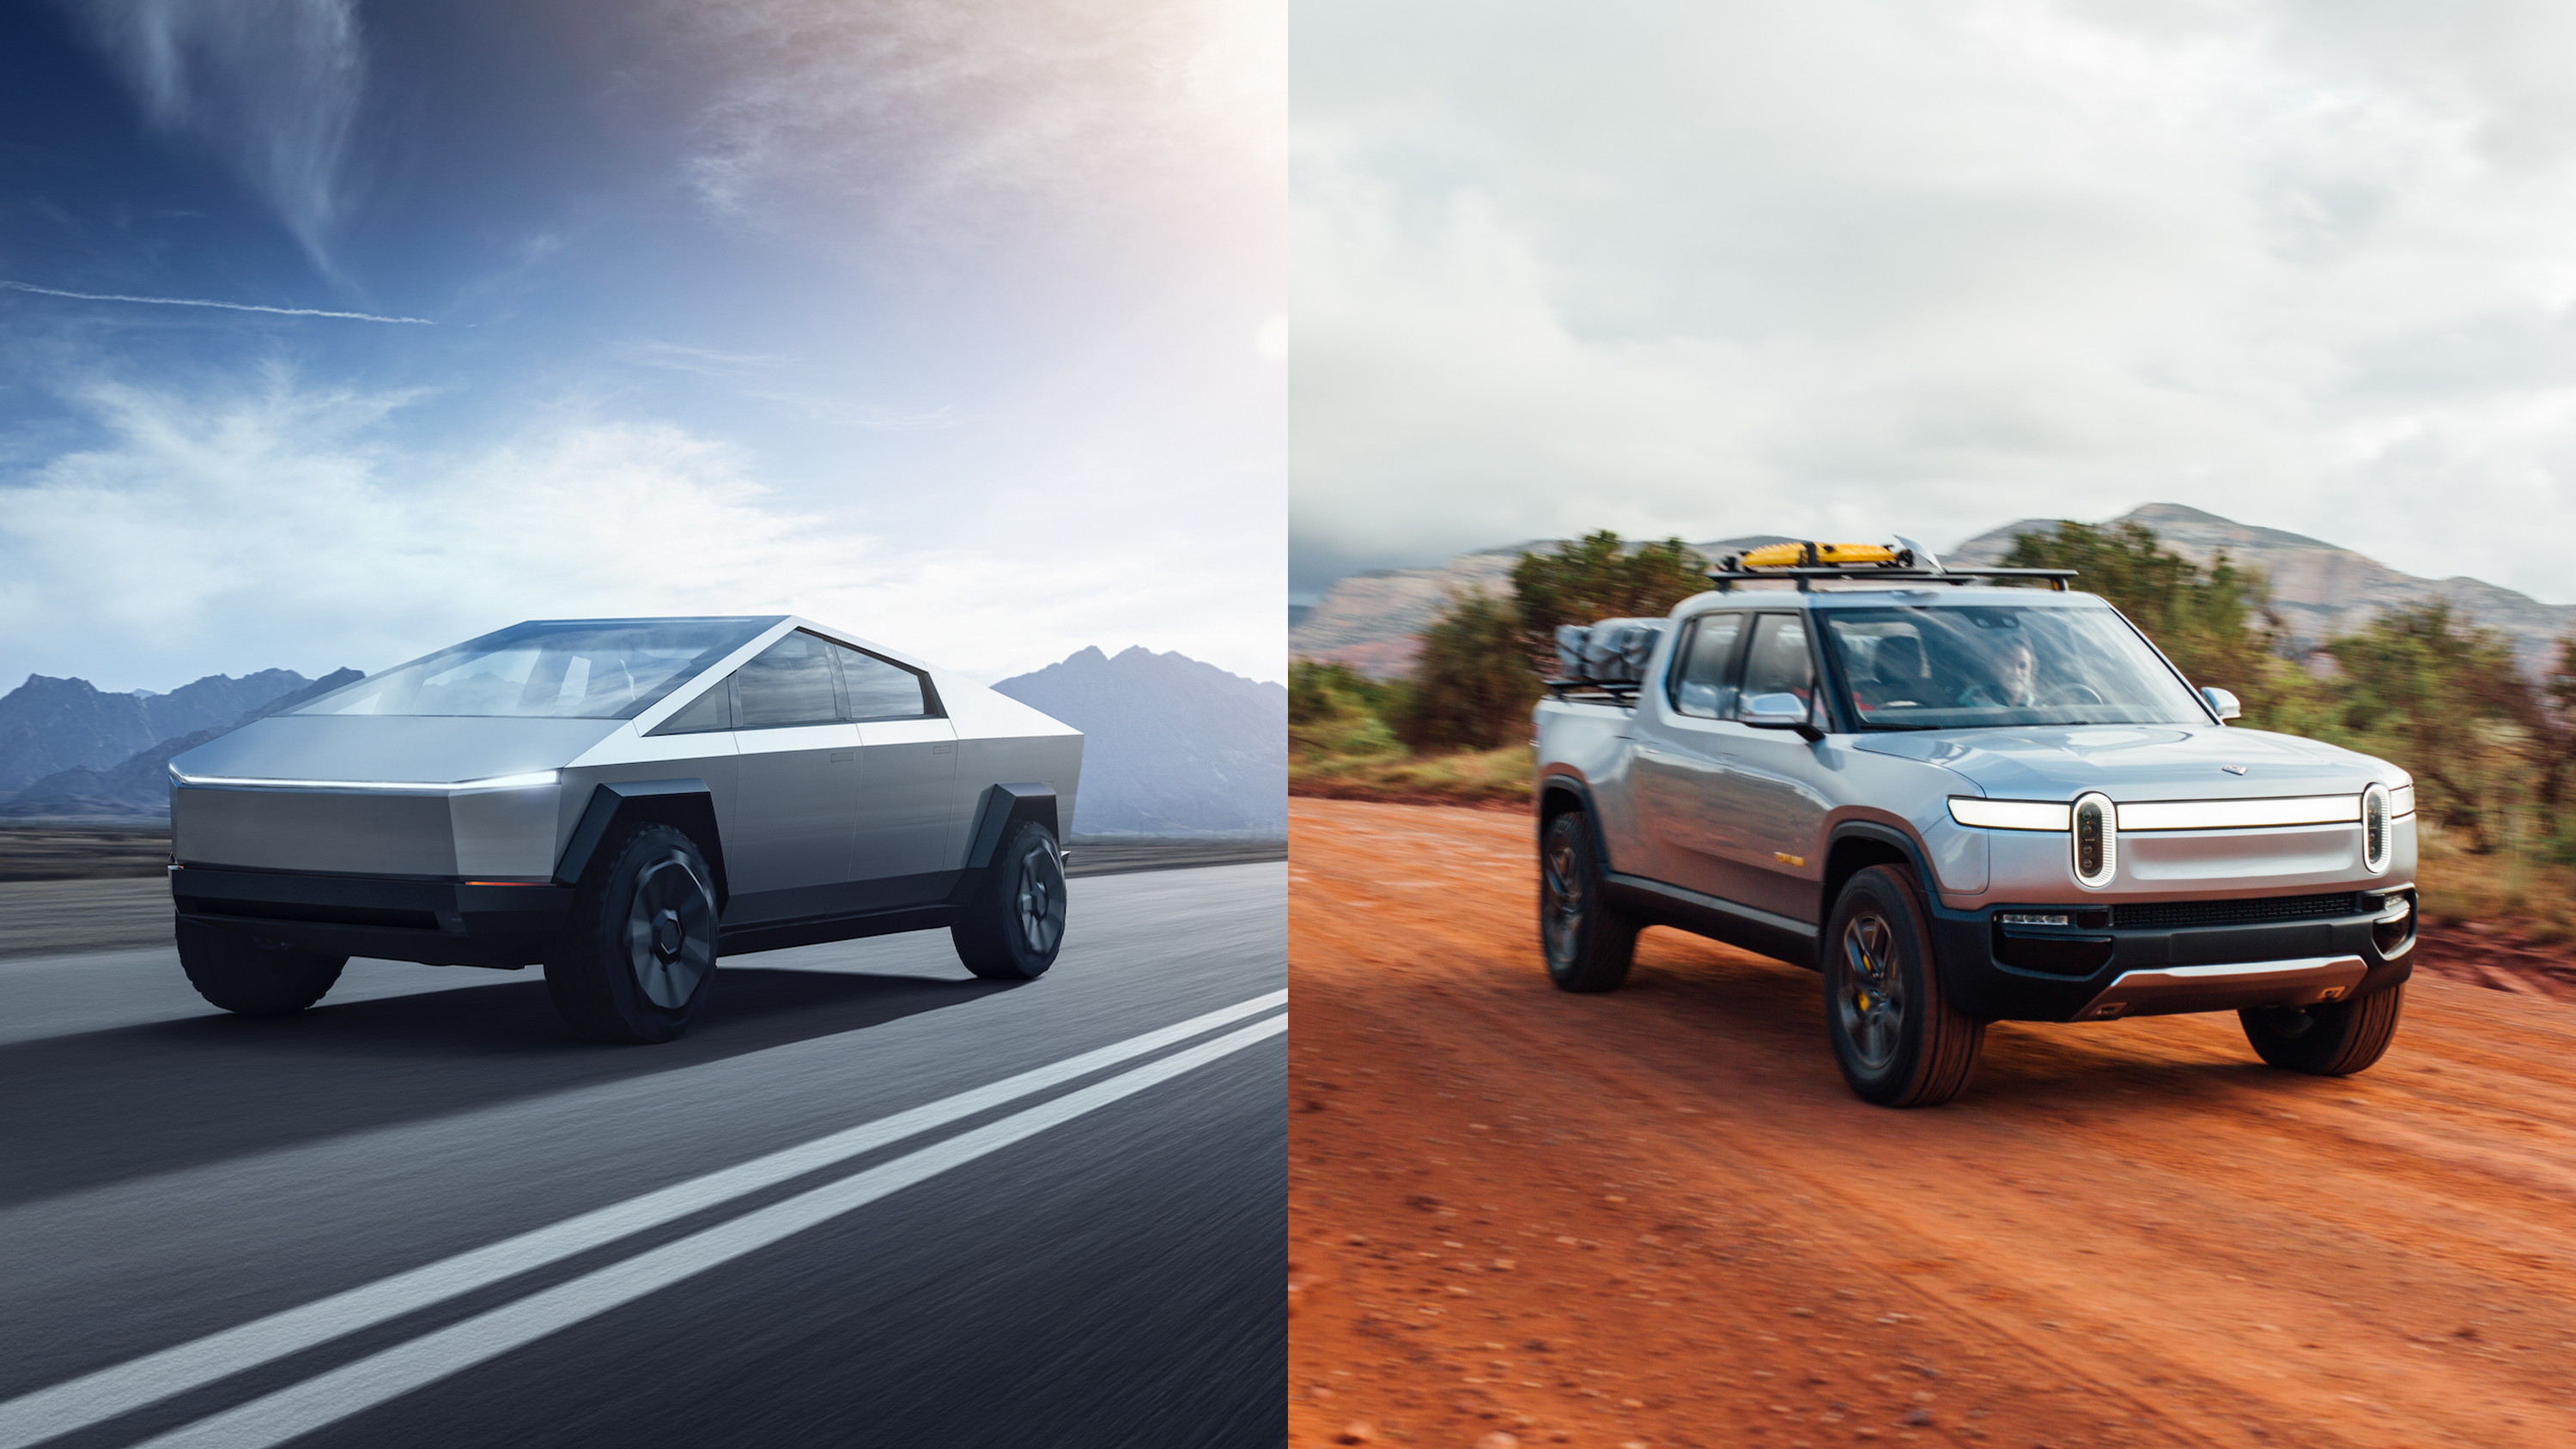 The Rivian pickup's real edge over Tesla's Cybertruck isn't its battery